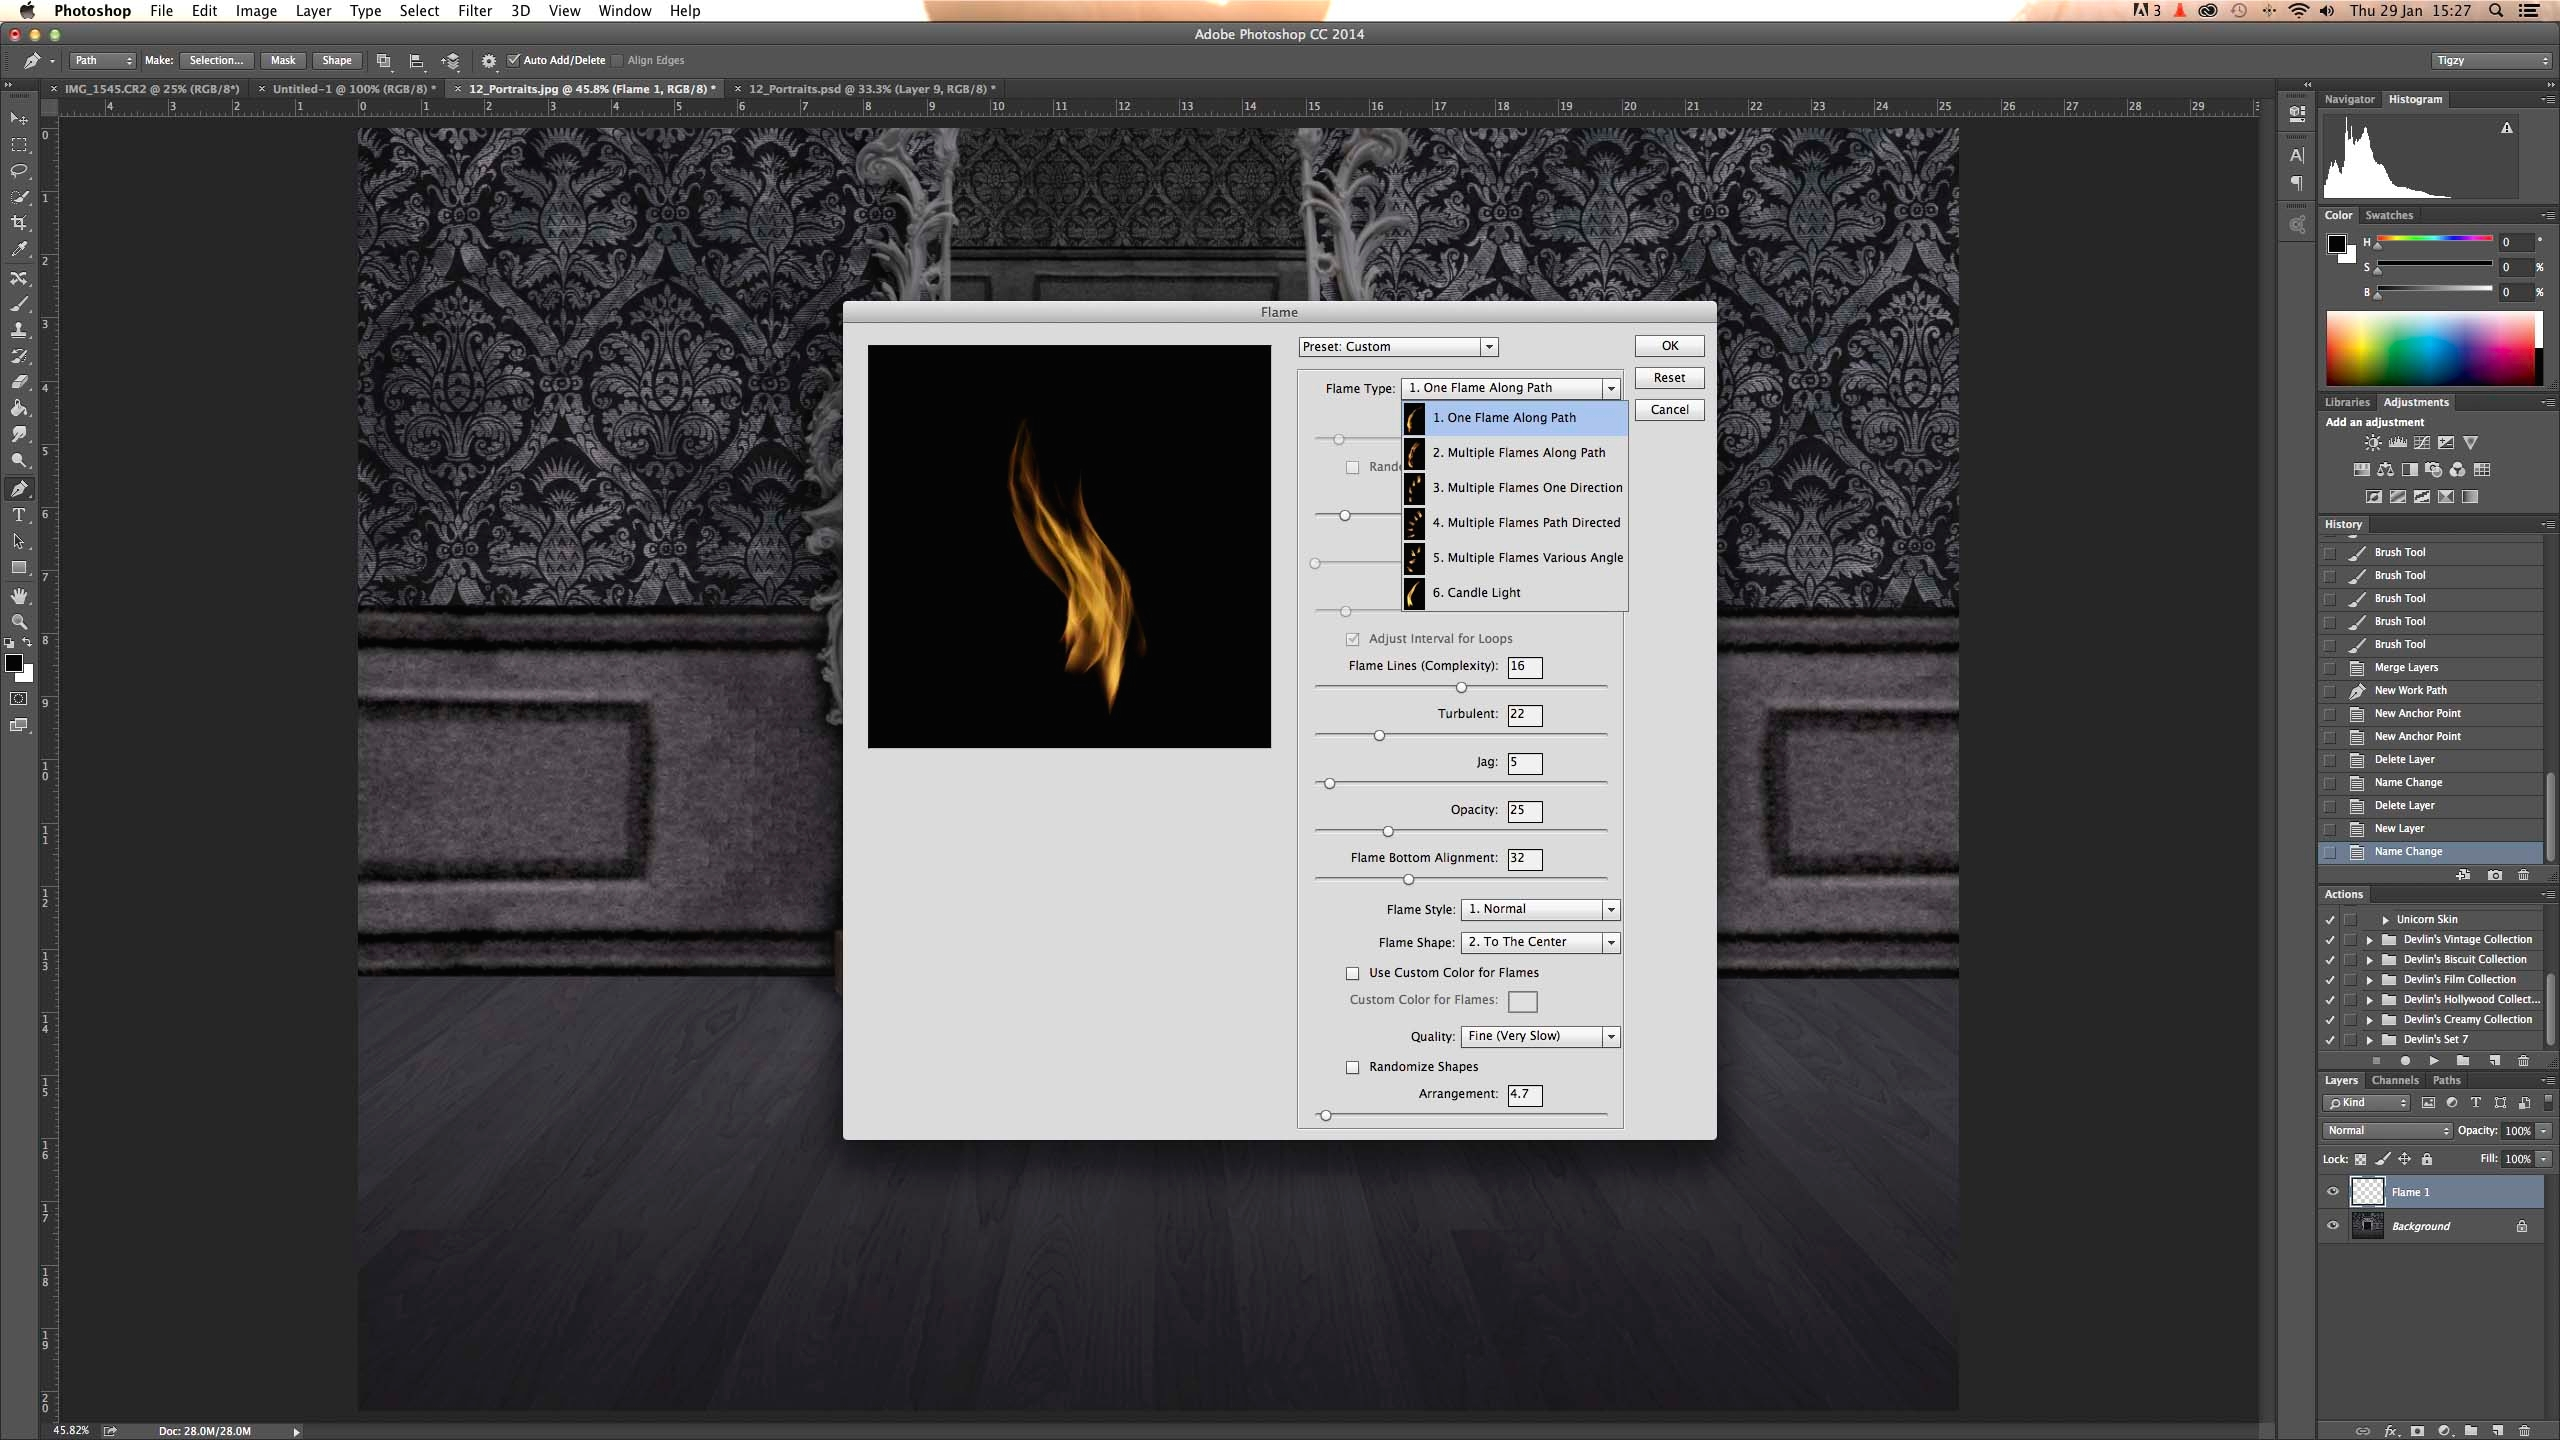 Photoshop tutorial: How to make fire in Photoshop - Digital Arts